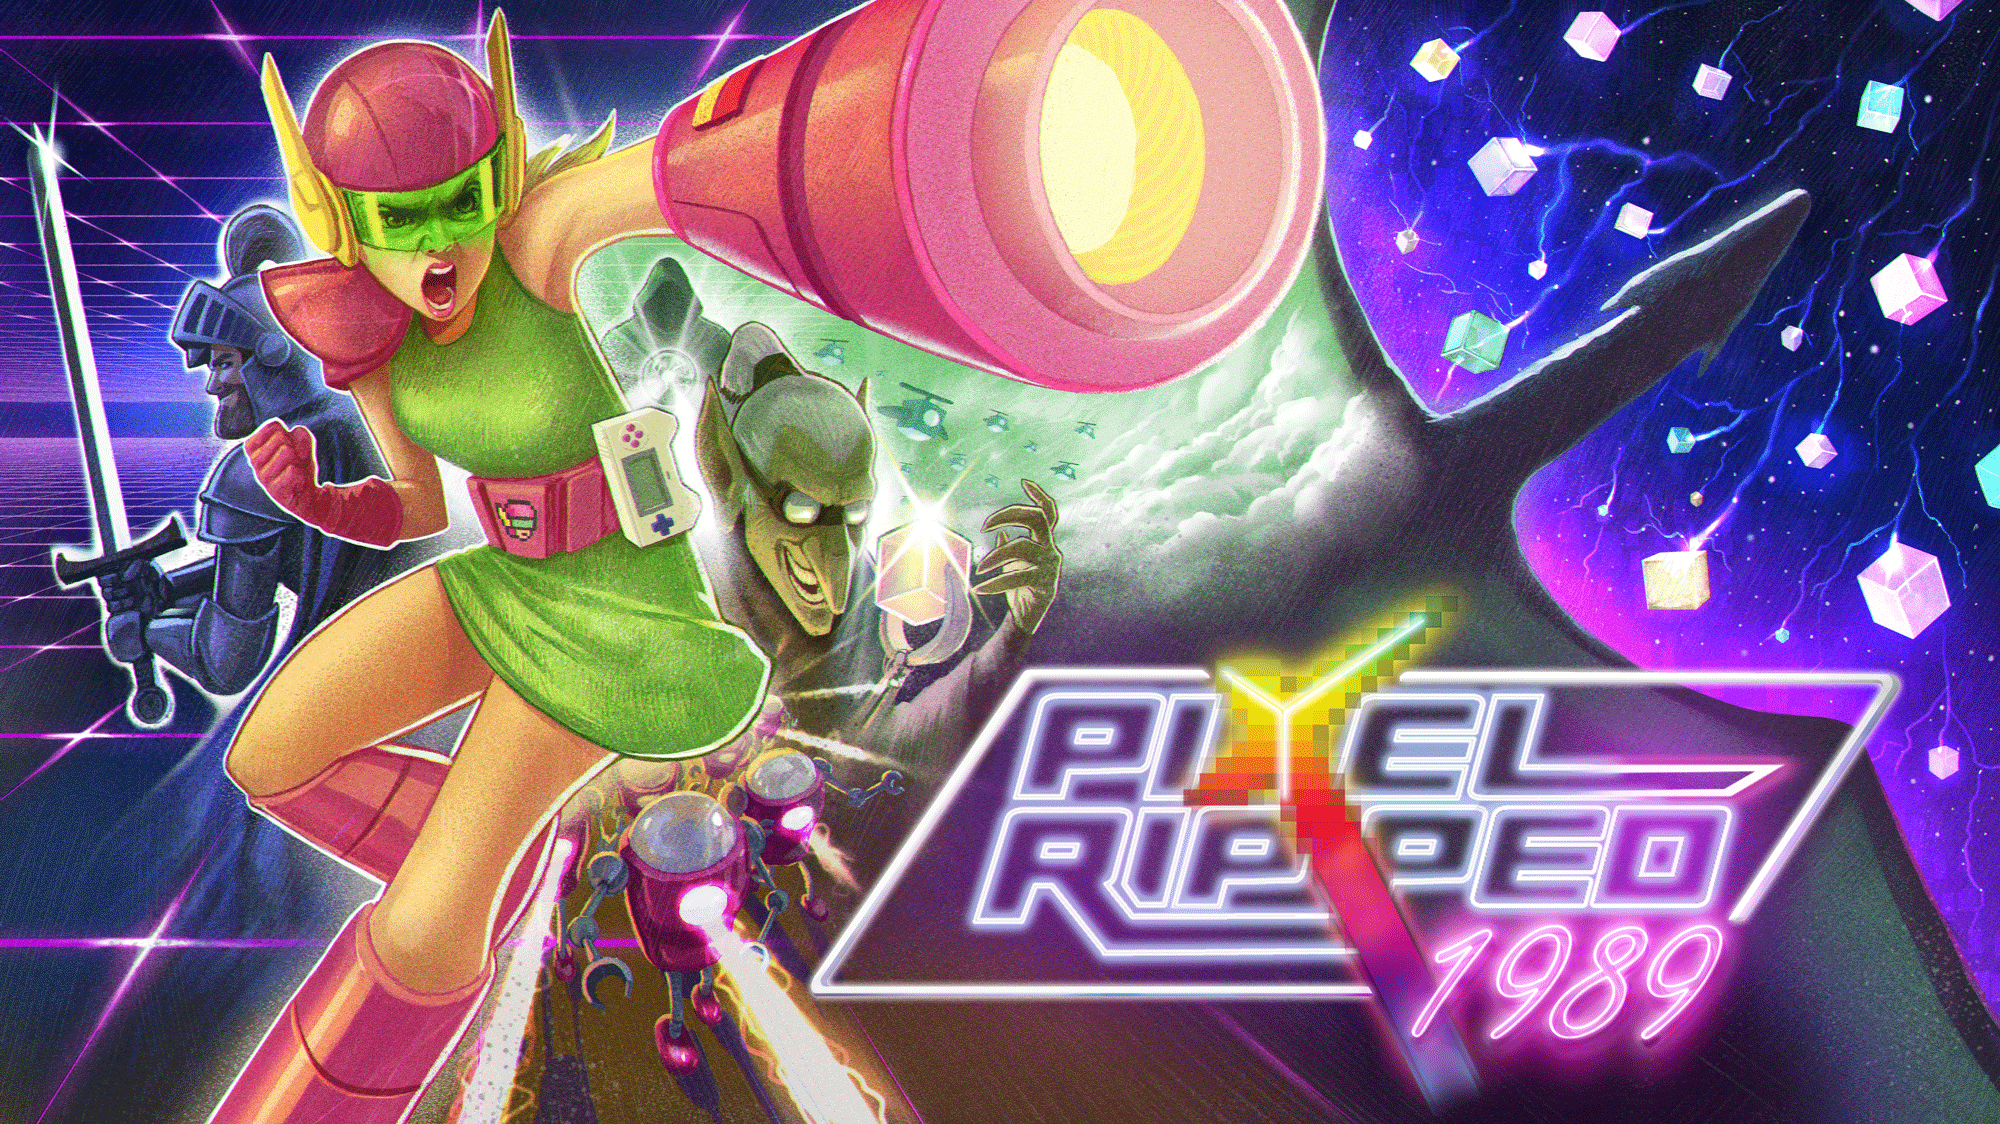 3368522-poster_pixelripped__1_.png